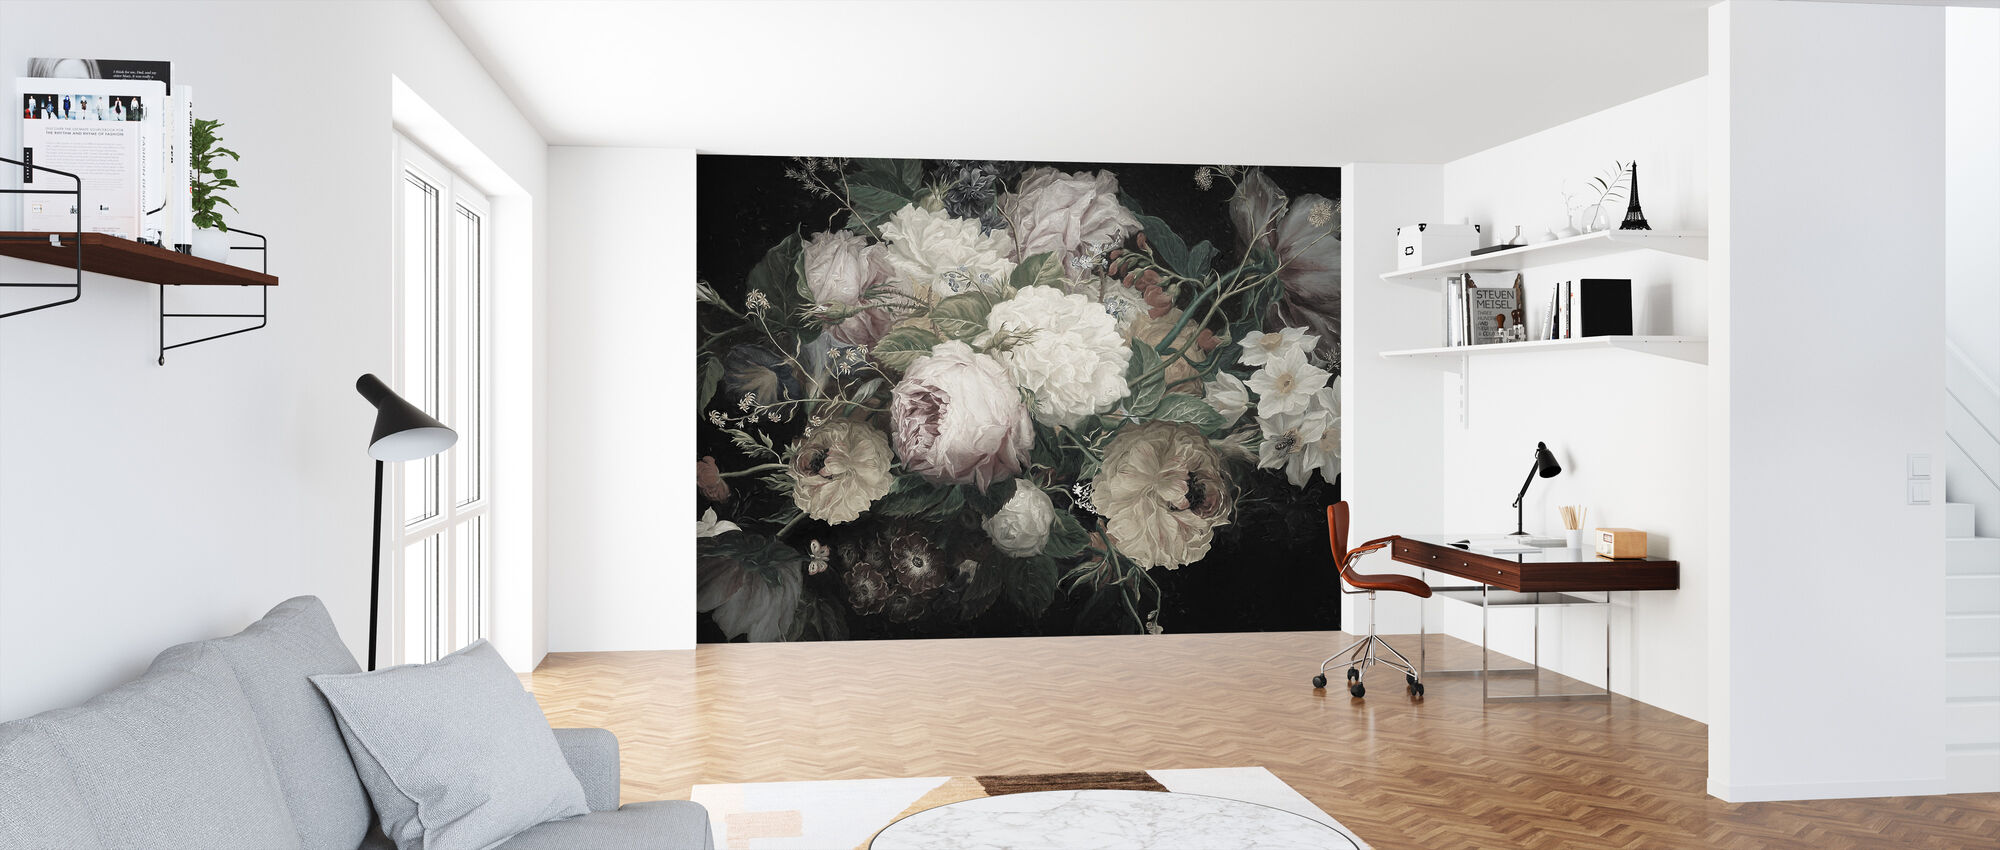 Bohemian Arrangement - Wallpaper - Office